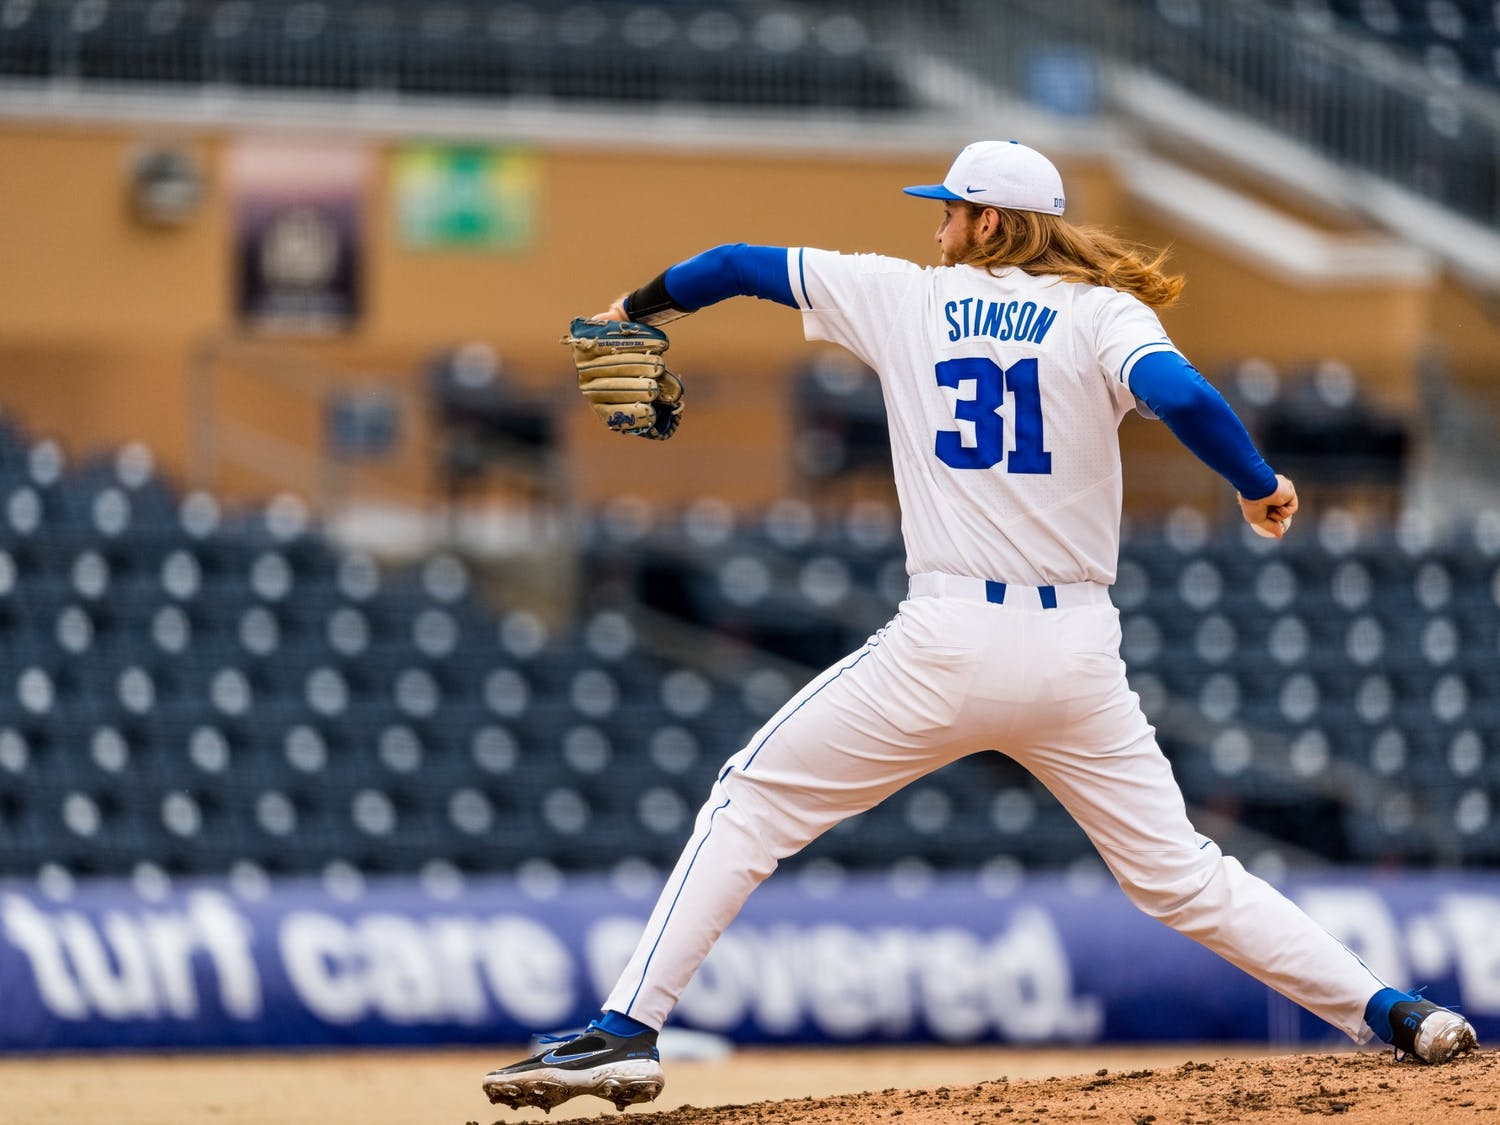 Junior Cooper Stinson impressed in his first start last weekend against Coastal Carolina, but struggled to replicate that success against Boston College.